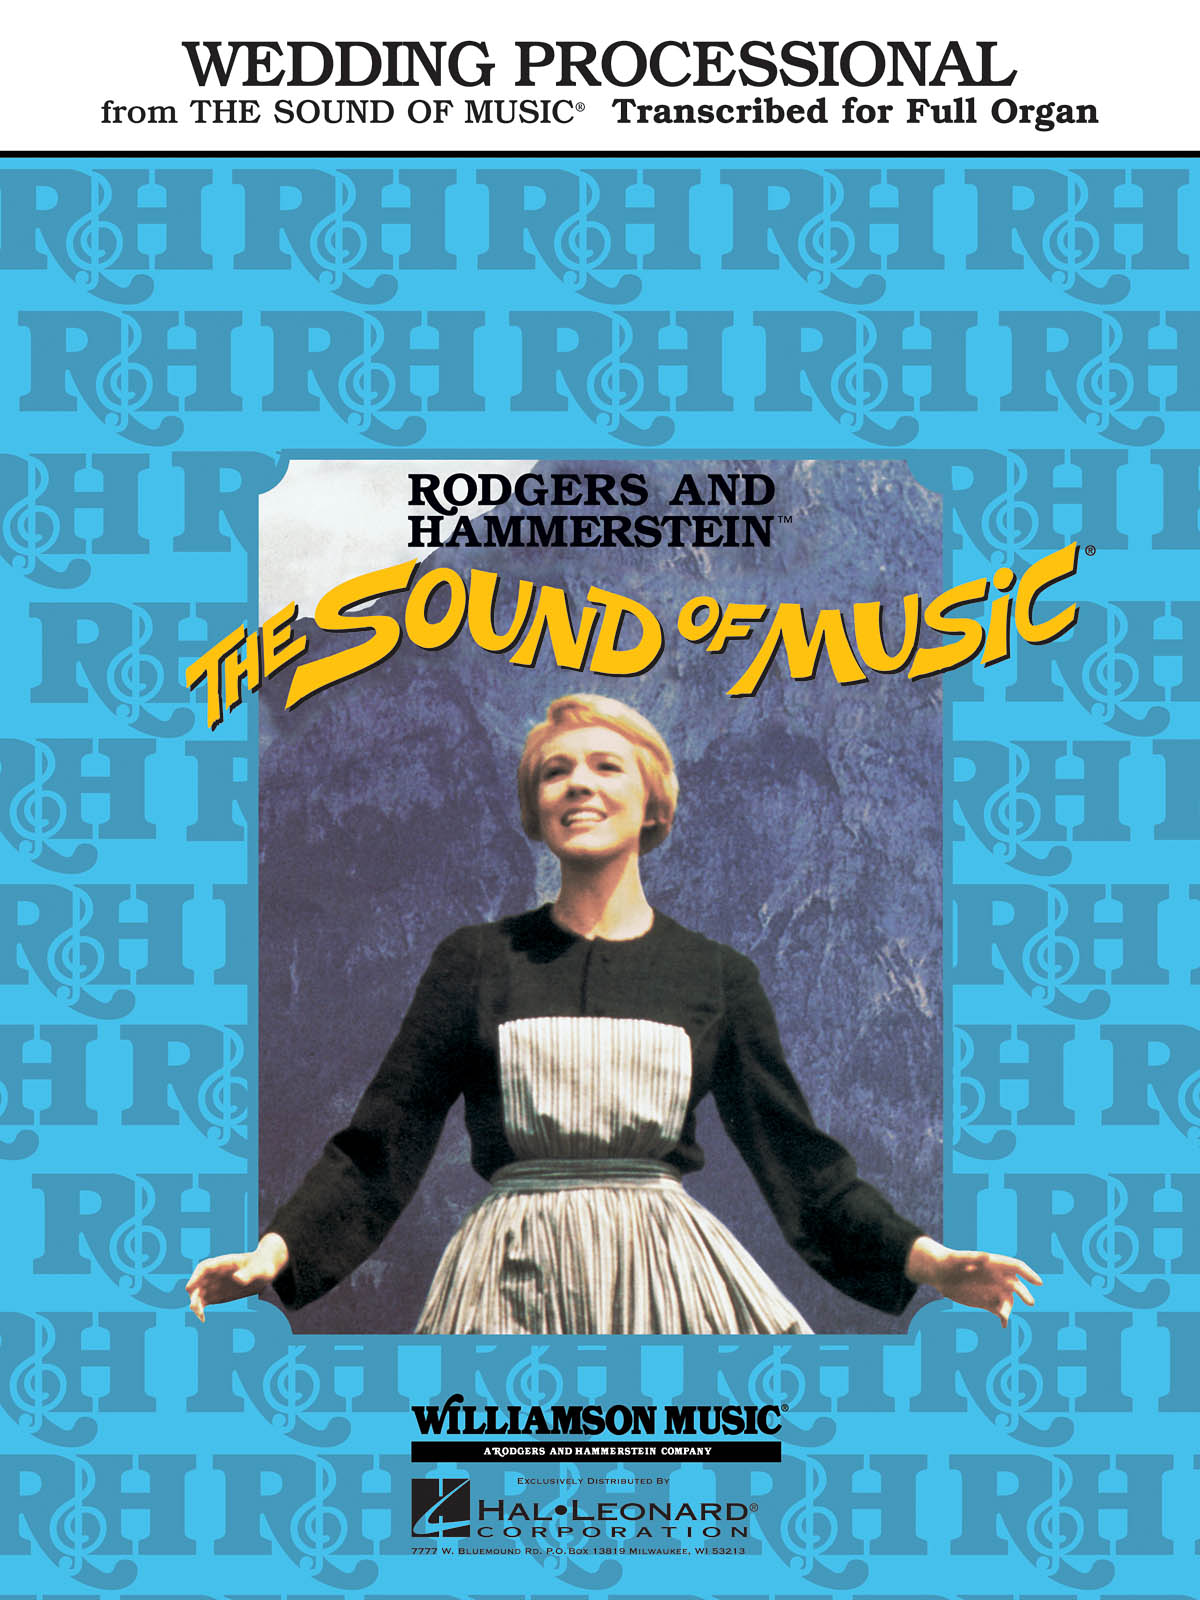 Oscar Hammerstein II Richard Rodgers: Wedding Processional (from The Sound of